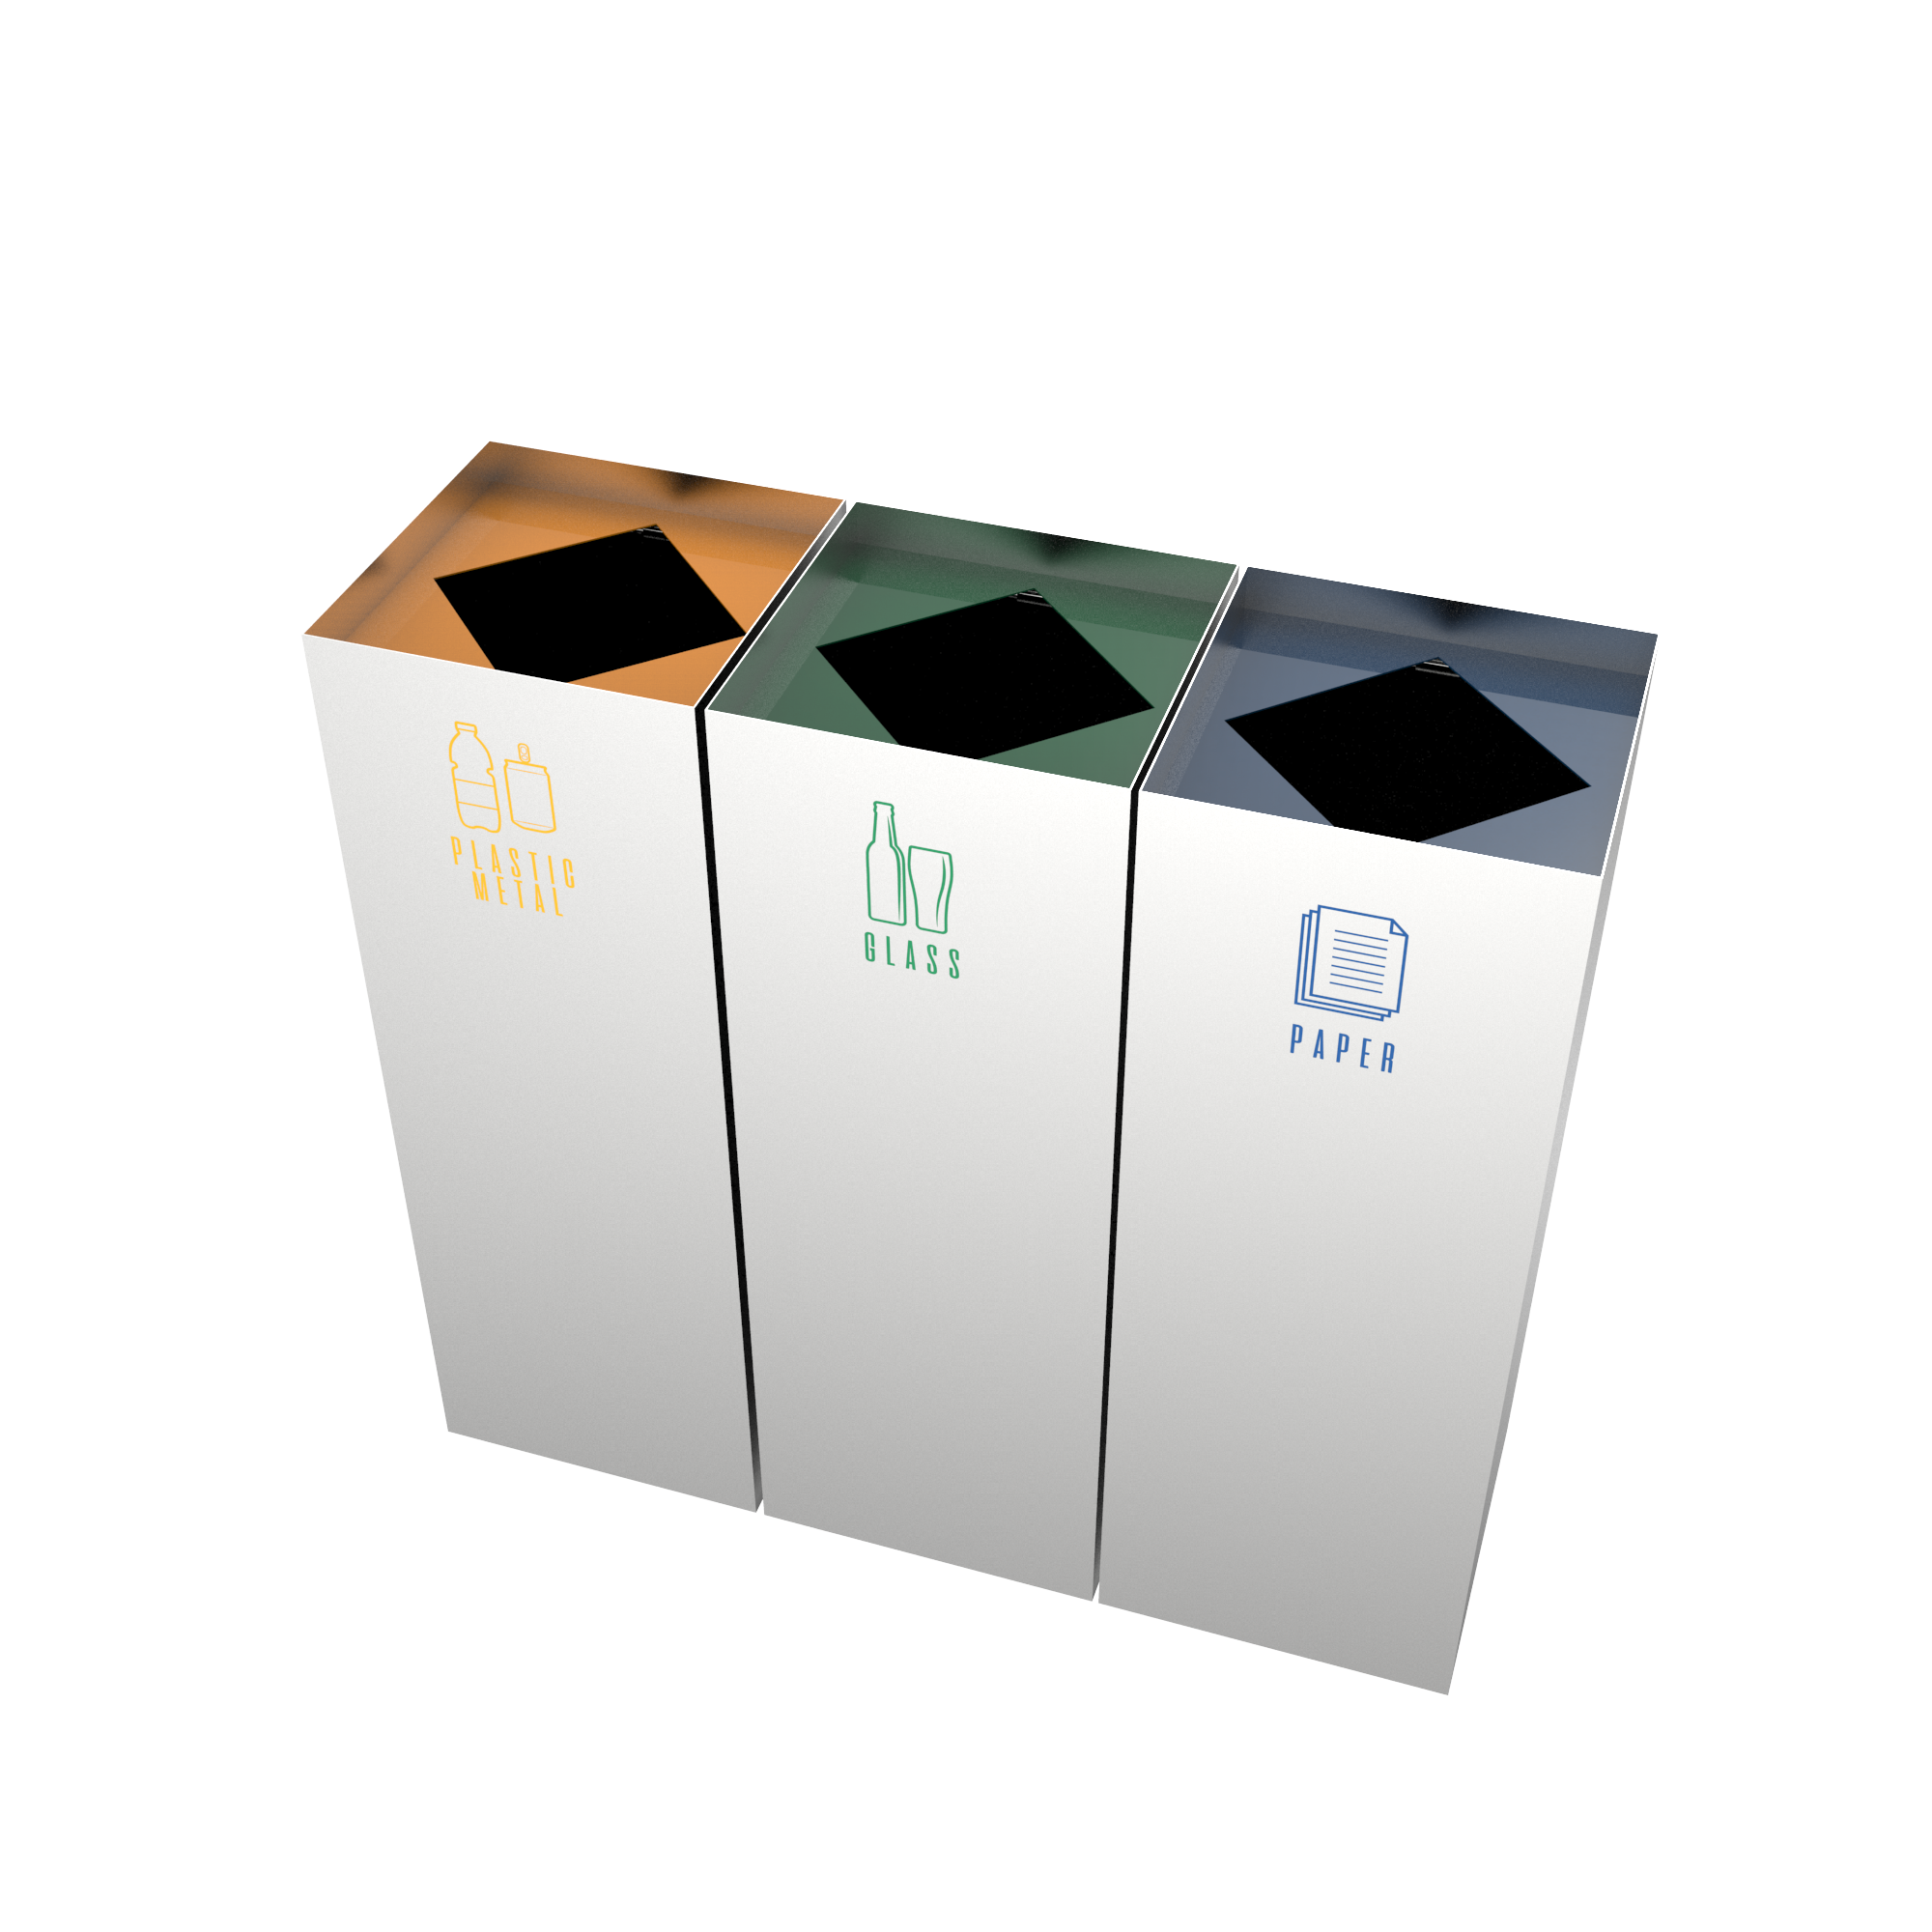 cimon sst set of recycle bins made of stainless steel